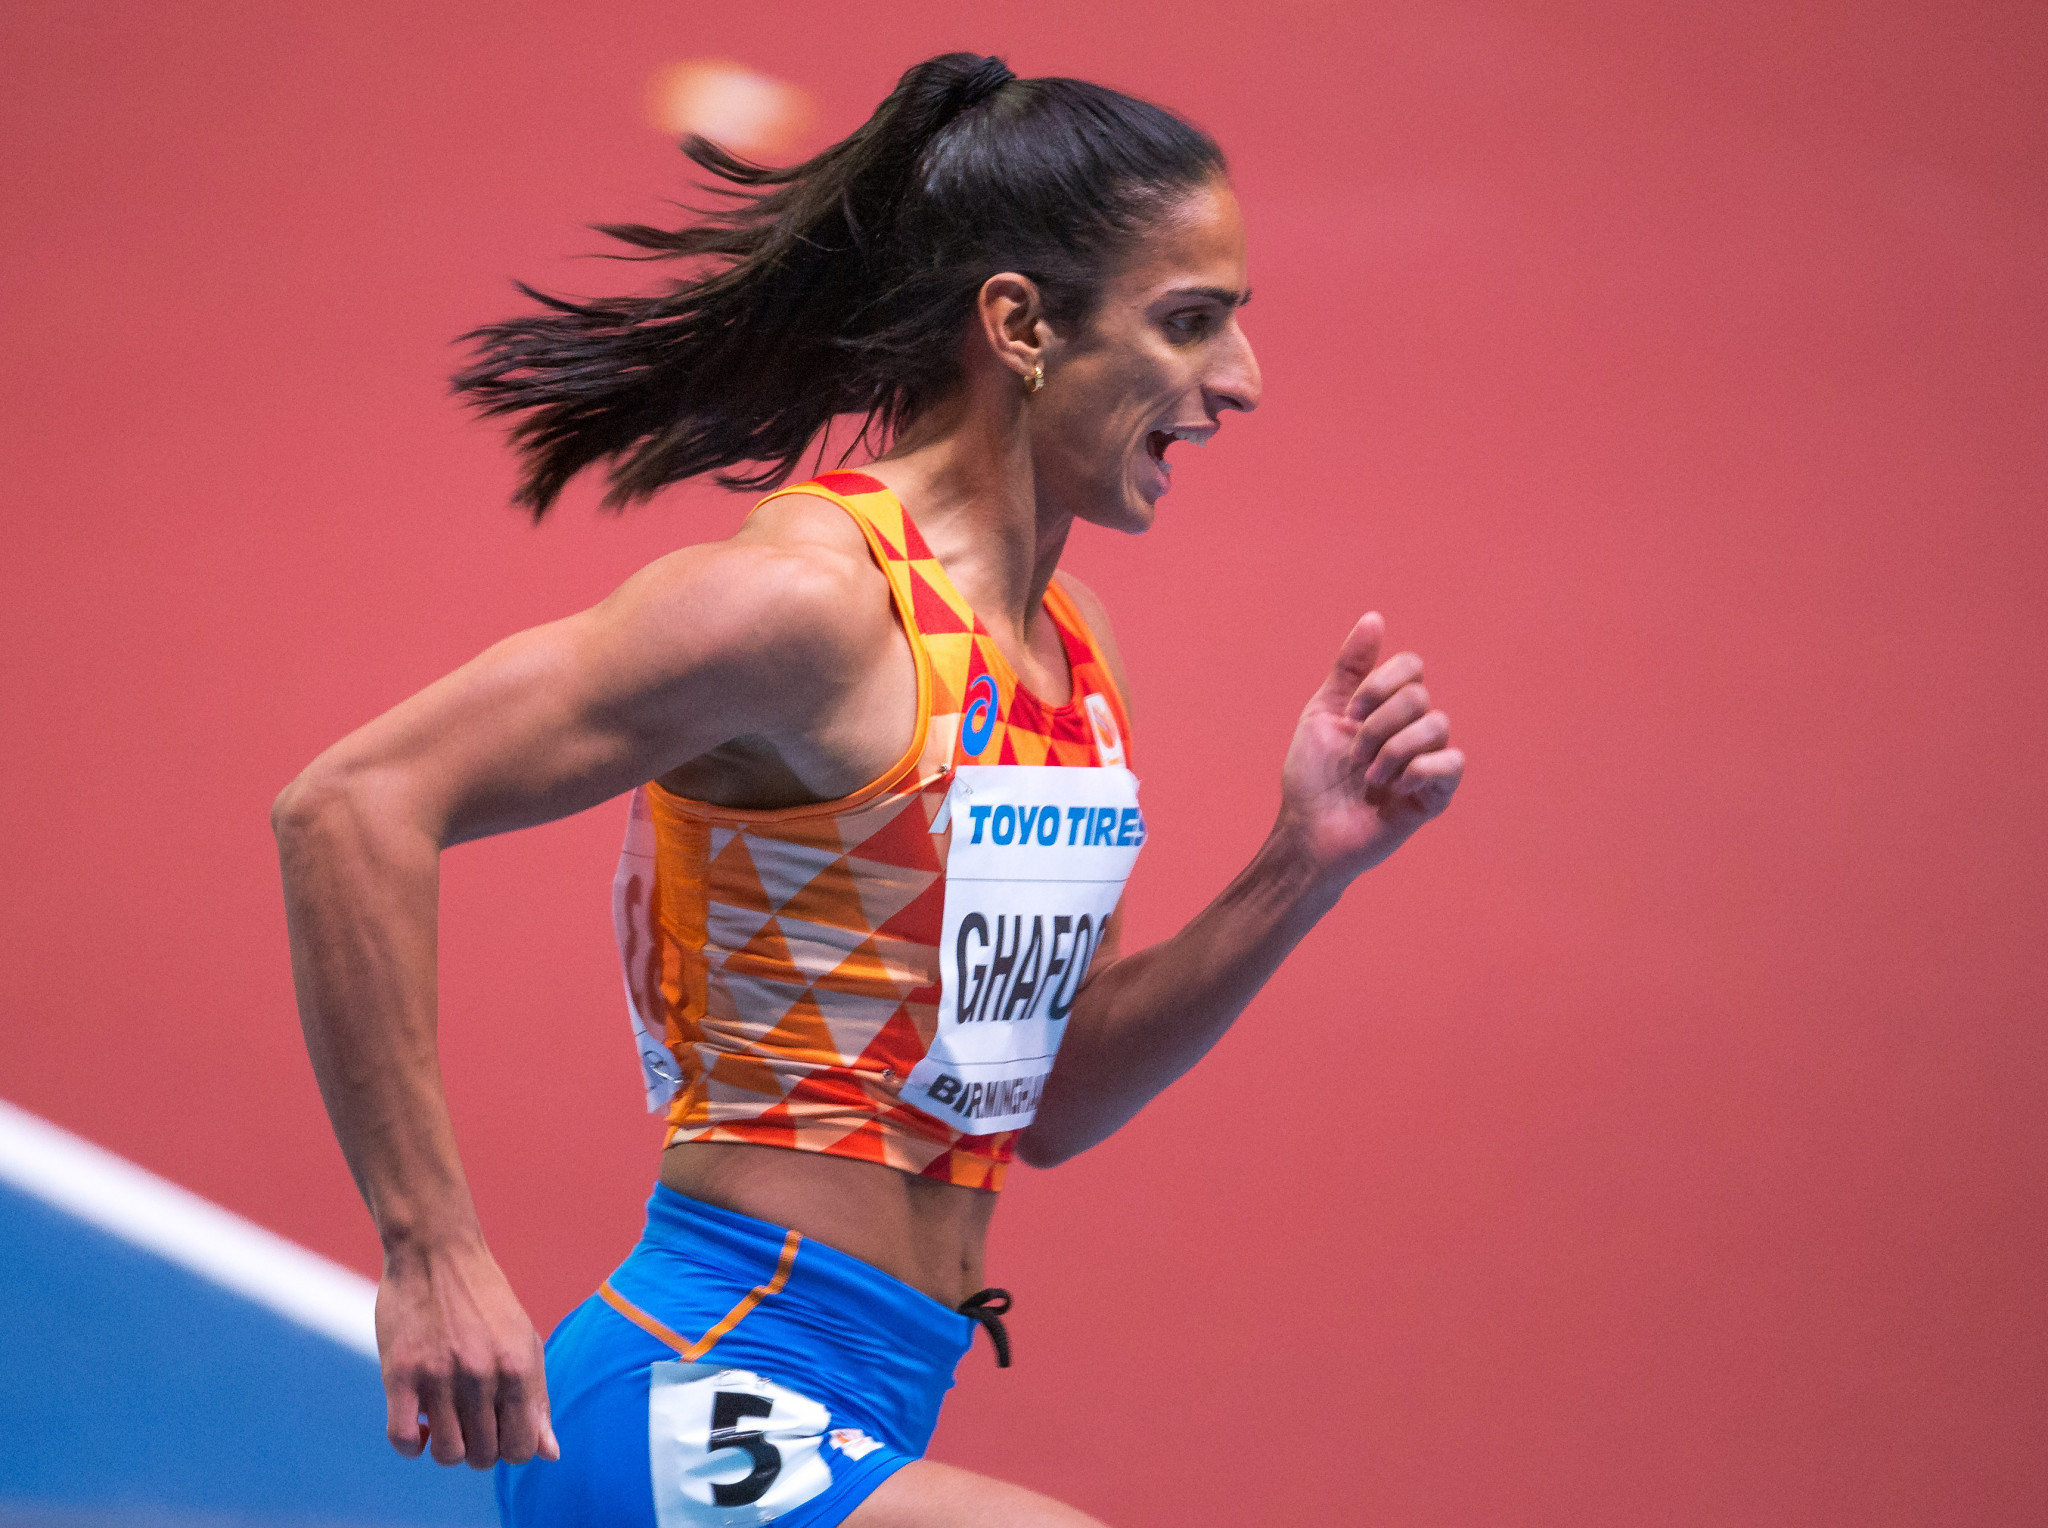 Dutch Olympian Ghafoor jailed for eight-and-a-half years